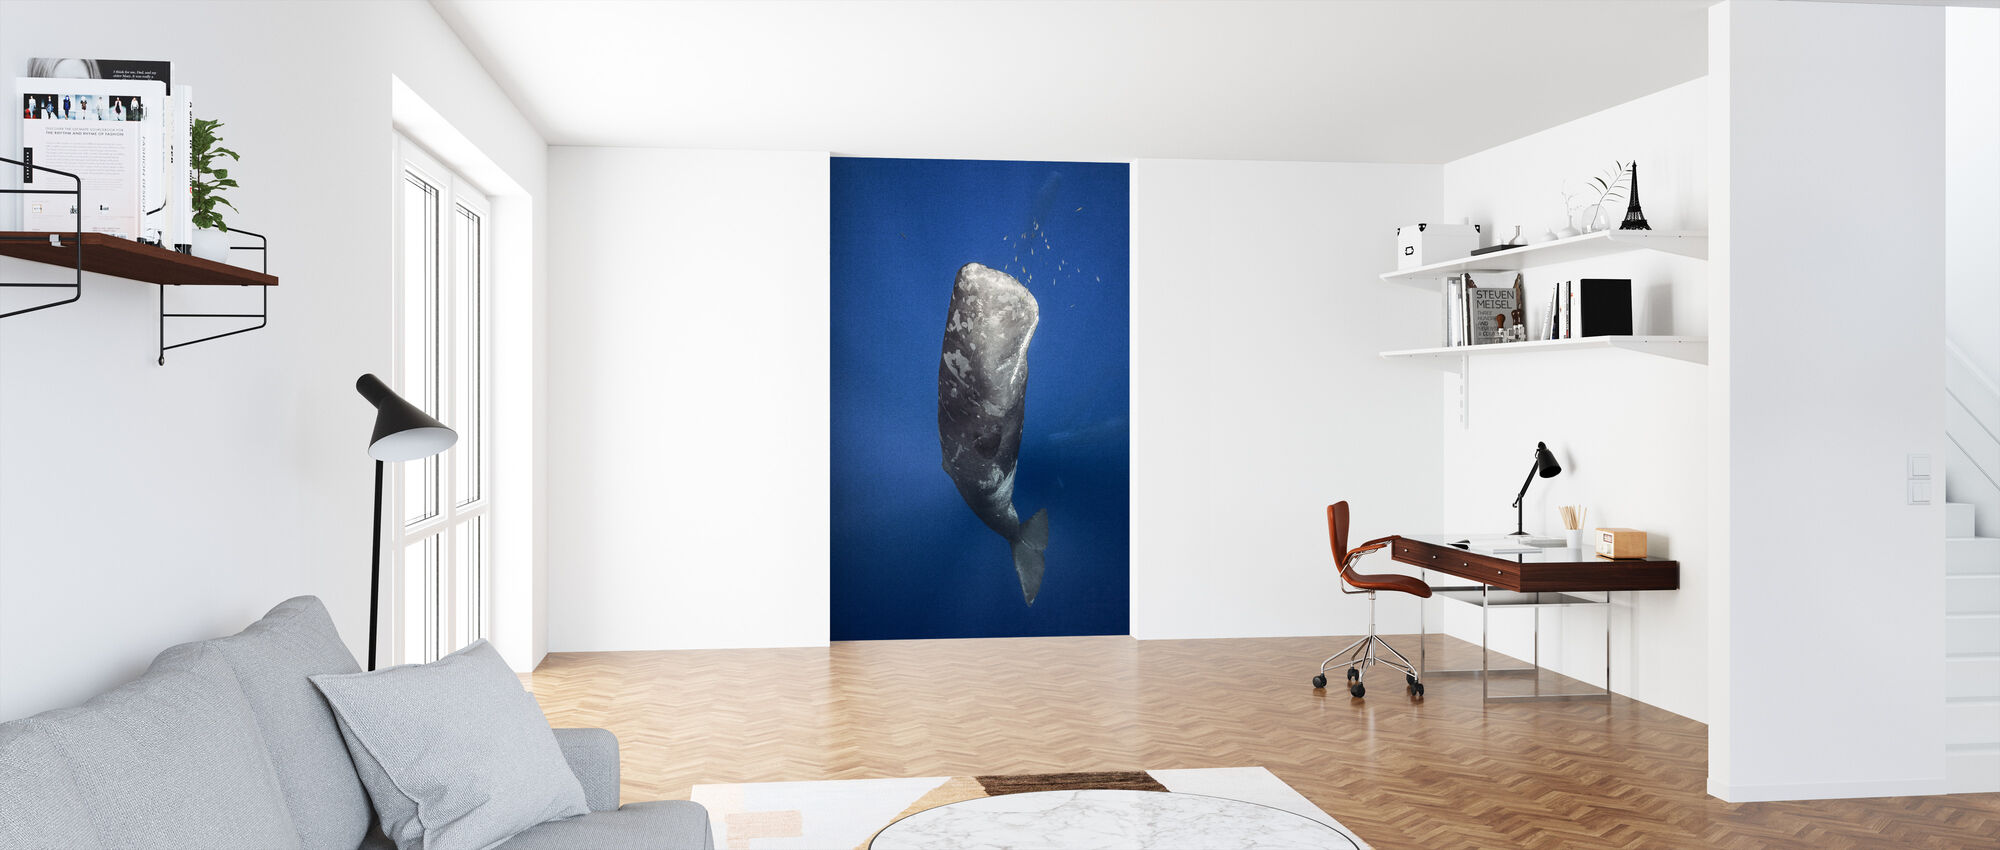 Candle Sperm Whale - Wallpaper - Office